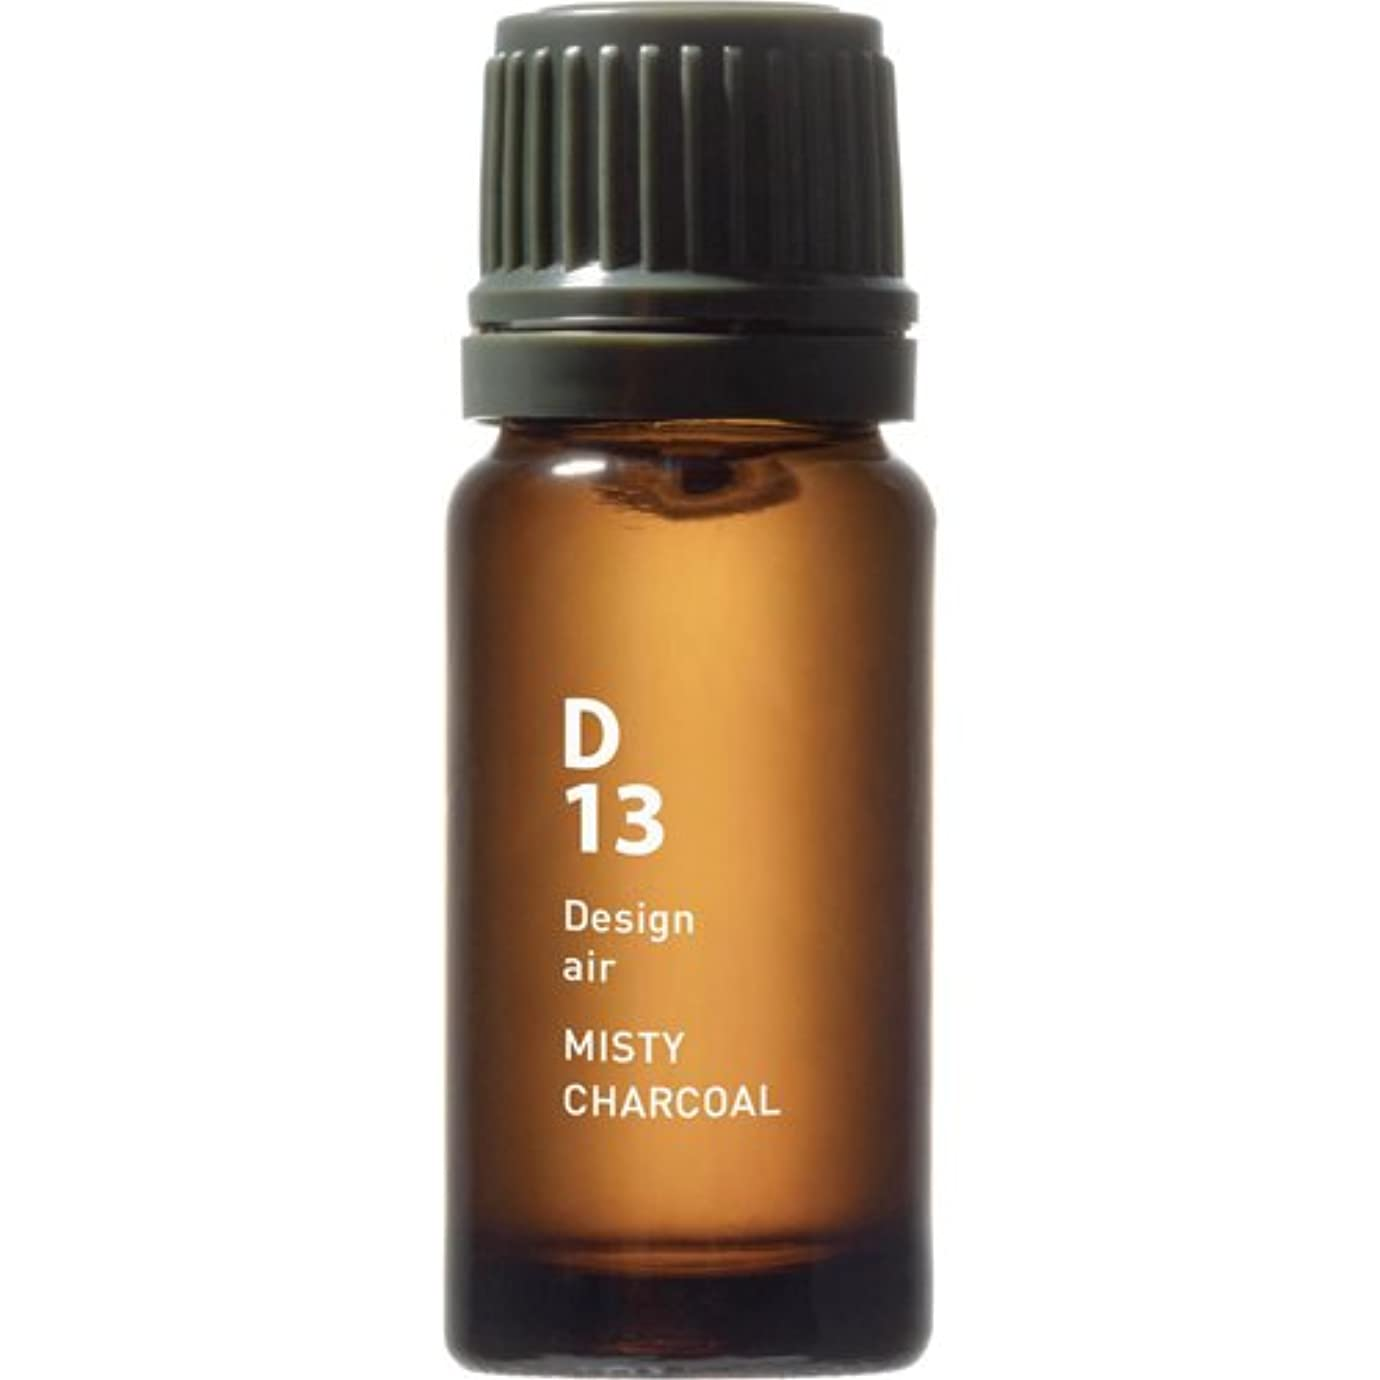 代名詞力強い加入D13 MISTY CHARCOAL Design air 10ml